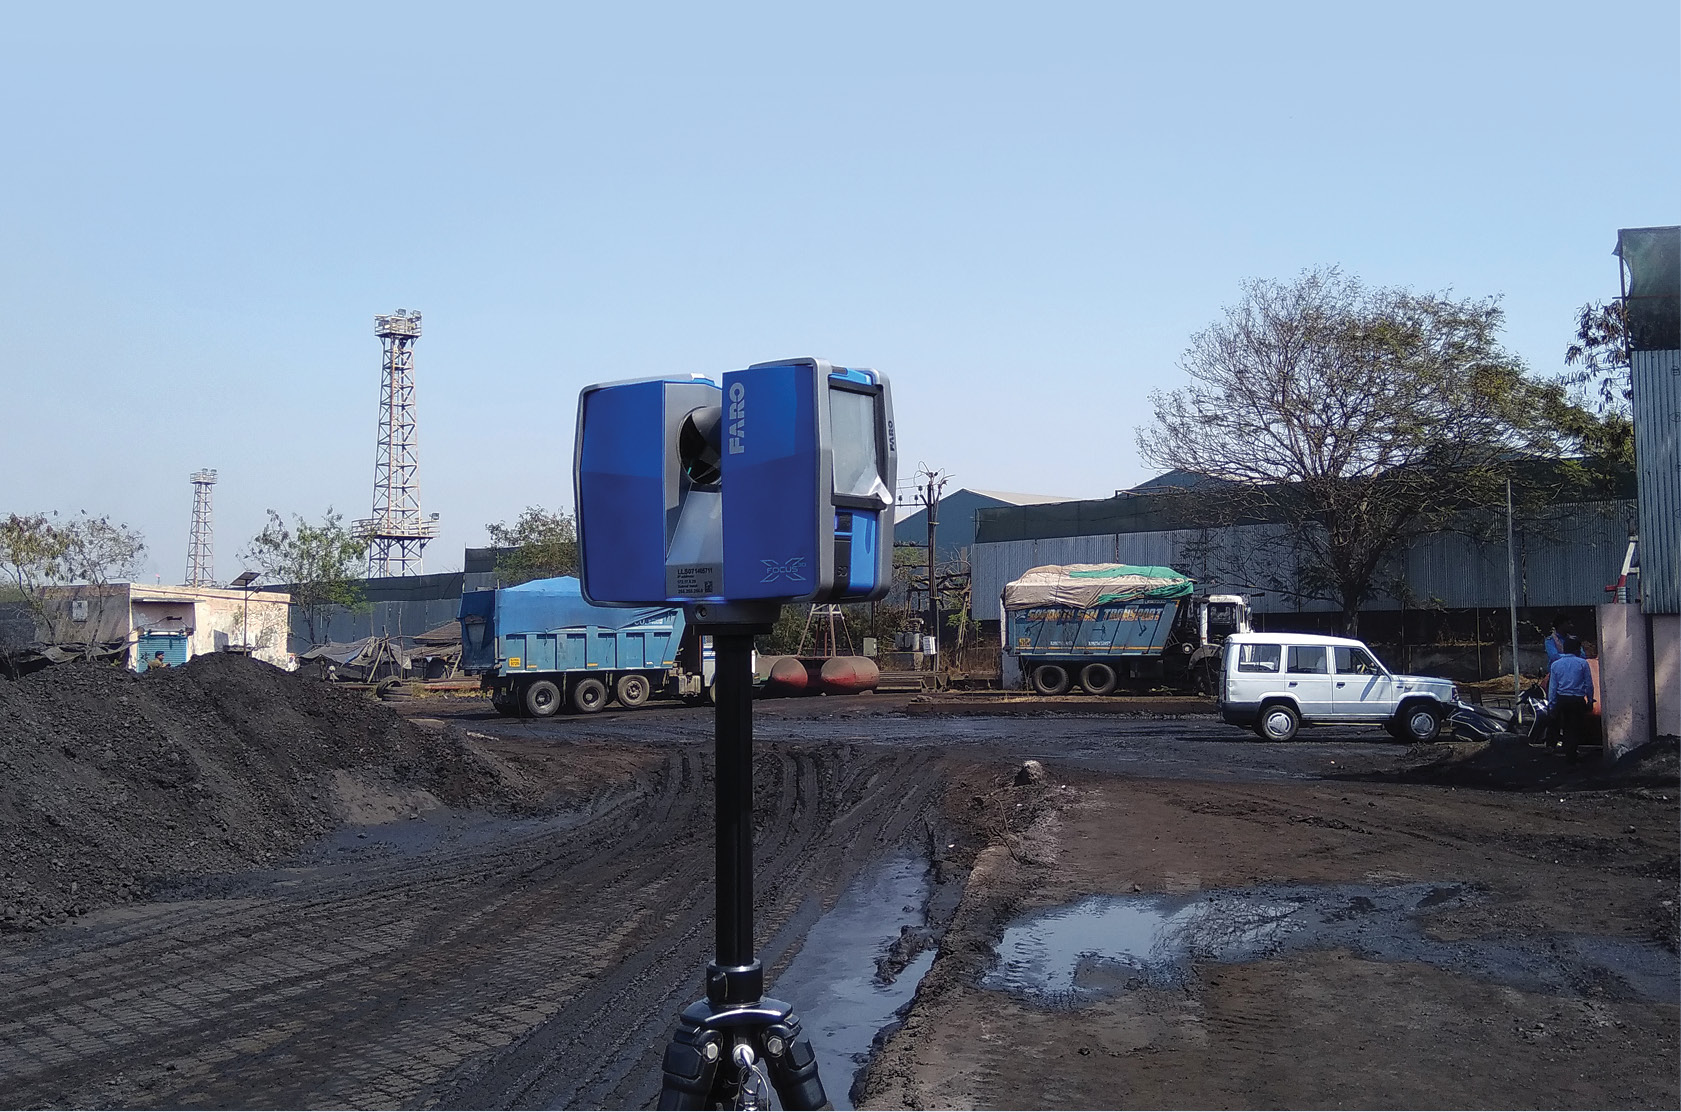 Expanding Capabilities with the FARO Laser Scanner